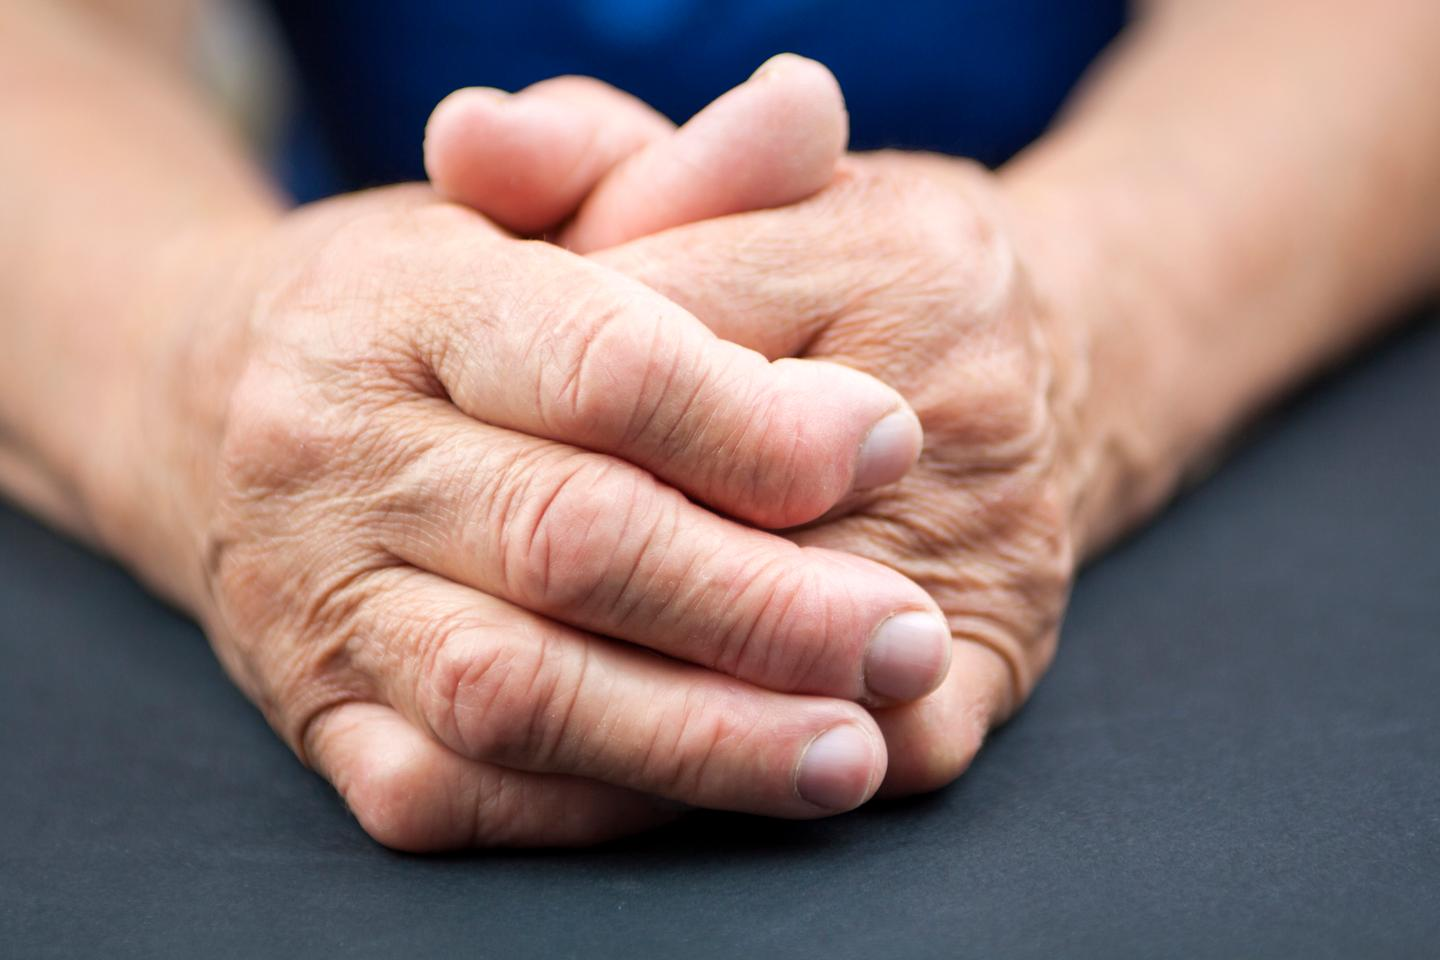 Researchers have developed a new stem cell-based treatment that could eventually provide relief for sufferers of rheumatoid arthritis